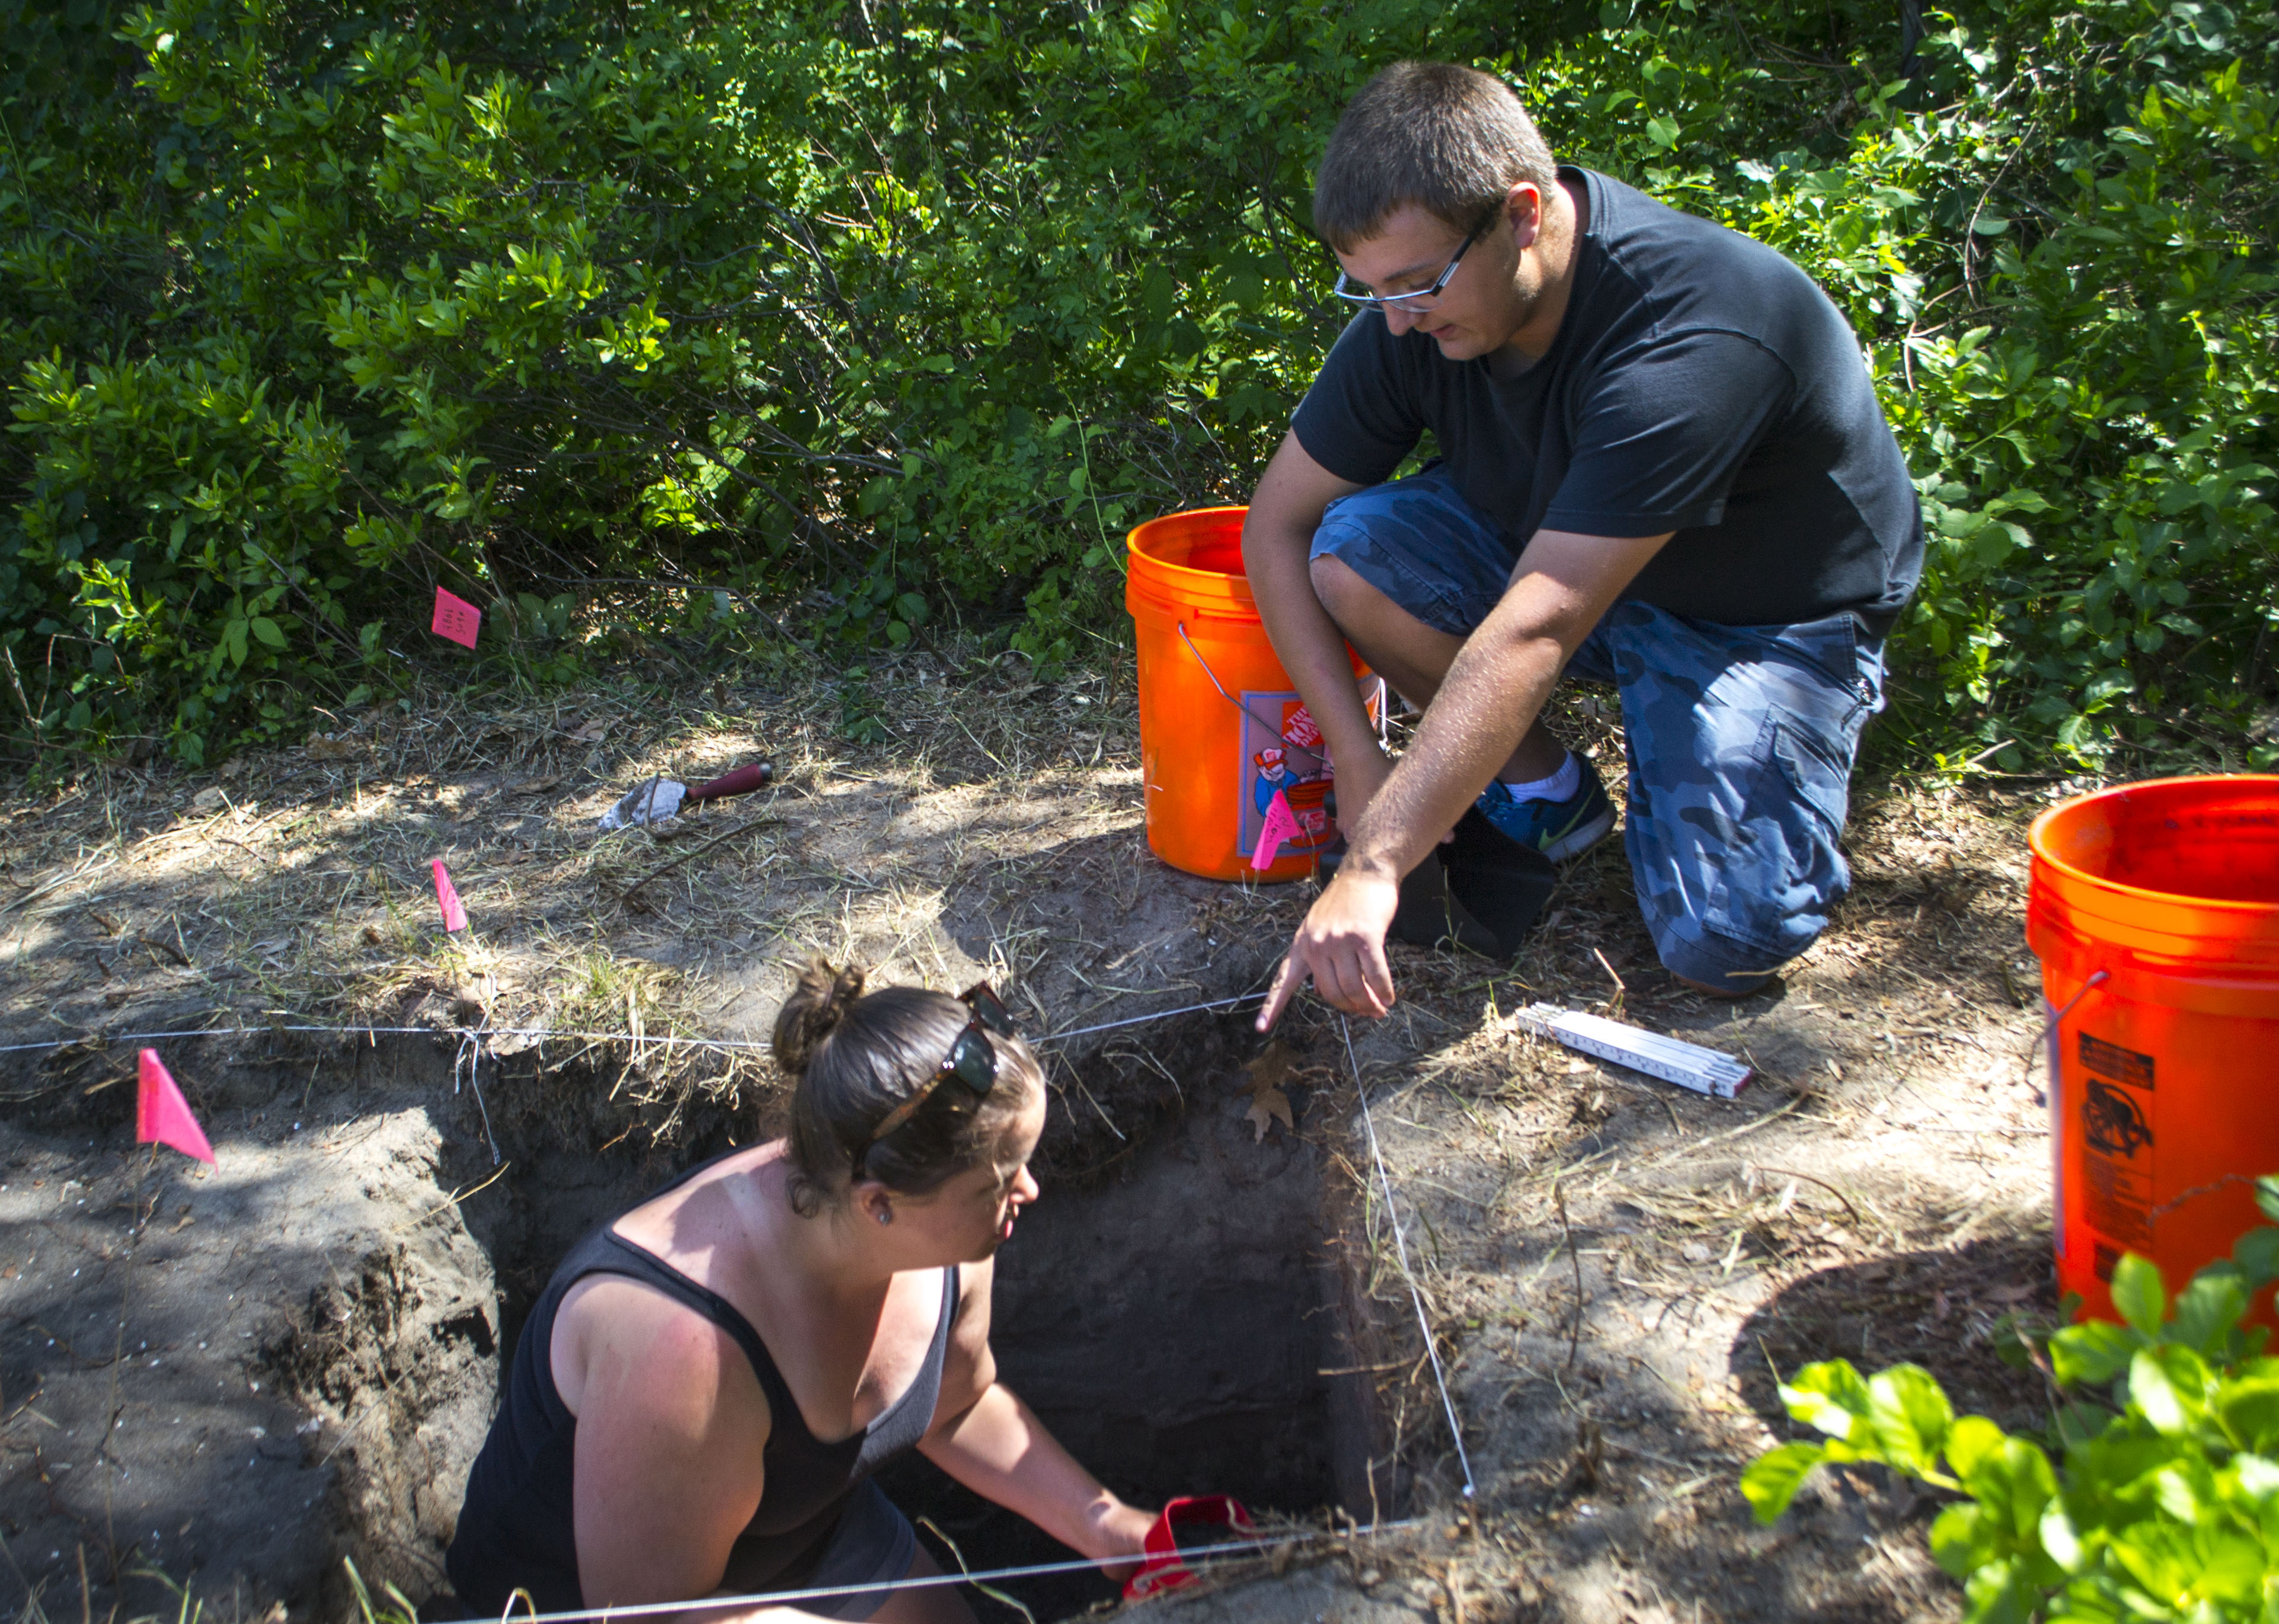 Mary Hollandbeck and Kyle Brennan excavate a plot of land as part of their archaeological field methods course at the University of New England on Wednesday. ALAN BENNETT/Journal Tribune